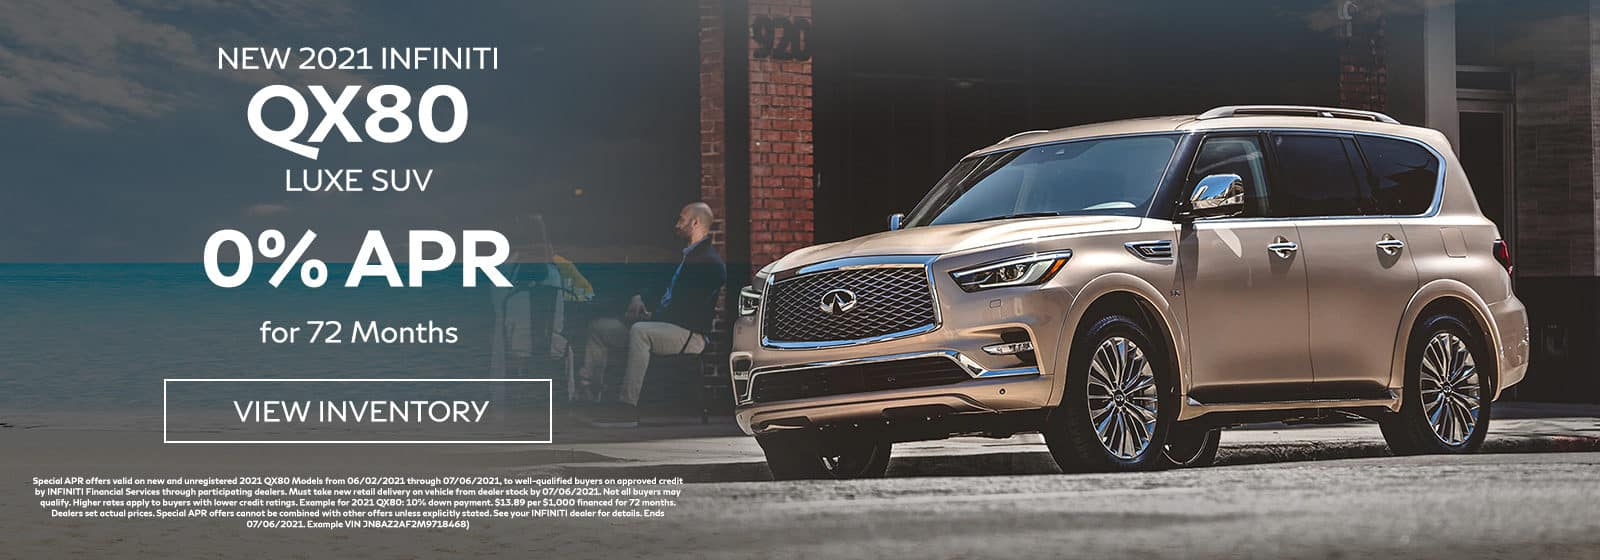 QX80 - 2021 INFINITI QX80 LUXE SUV, 0% APR for 72 Months. Offer expires 7/6/2021